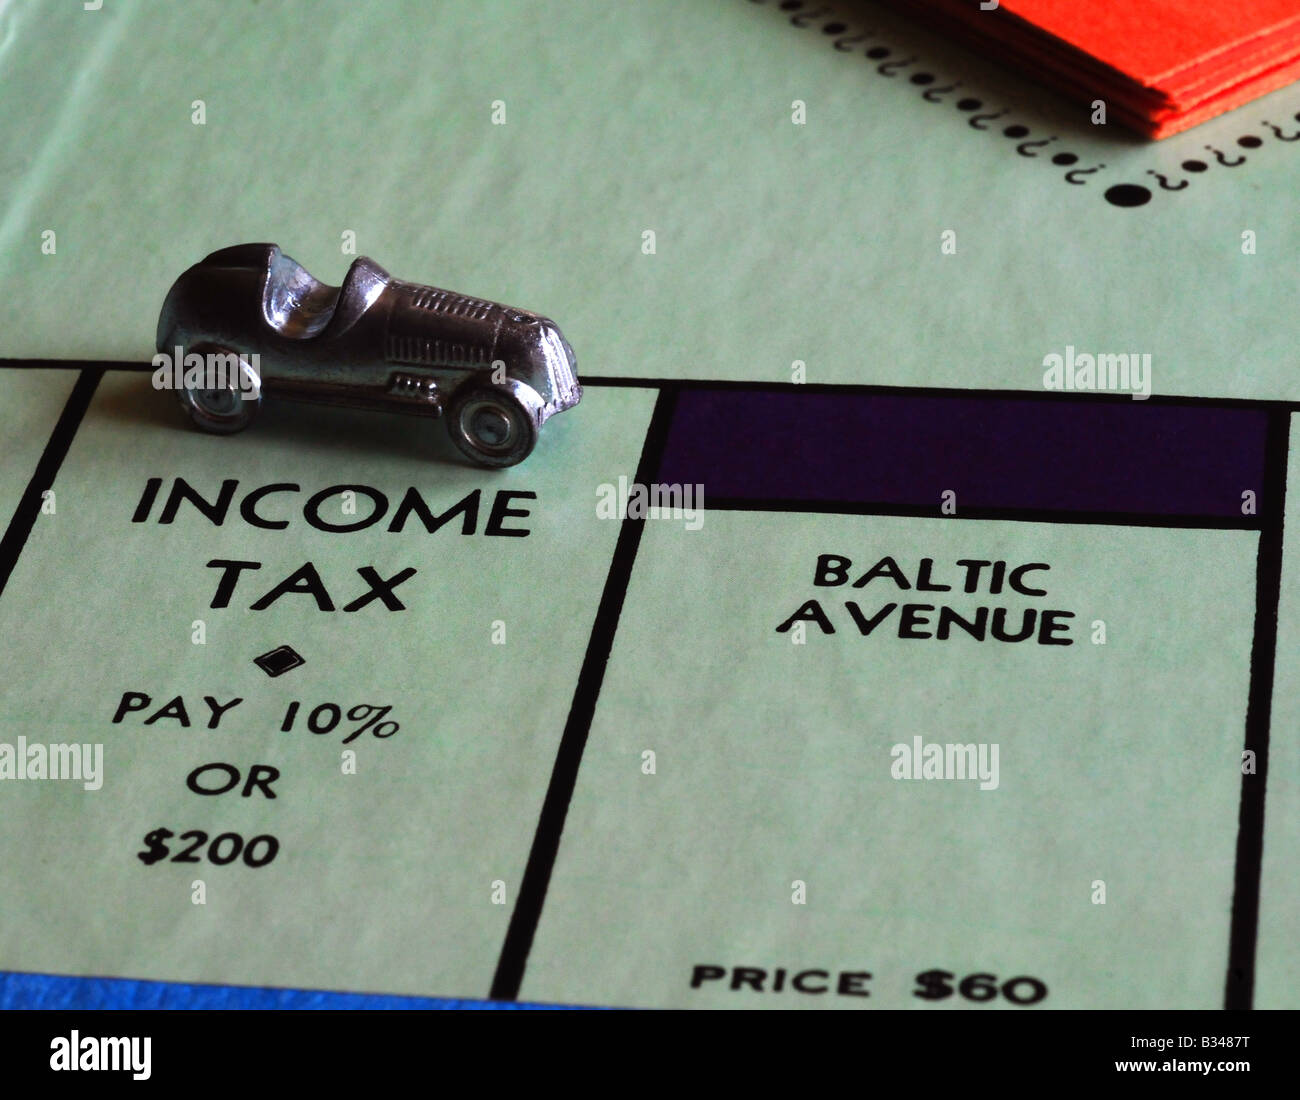 Income tax square on a Monopoly game board - Stock Image